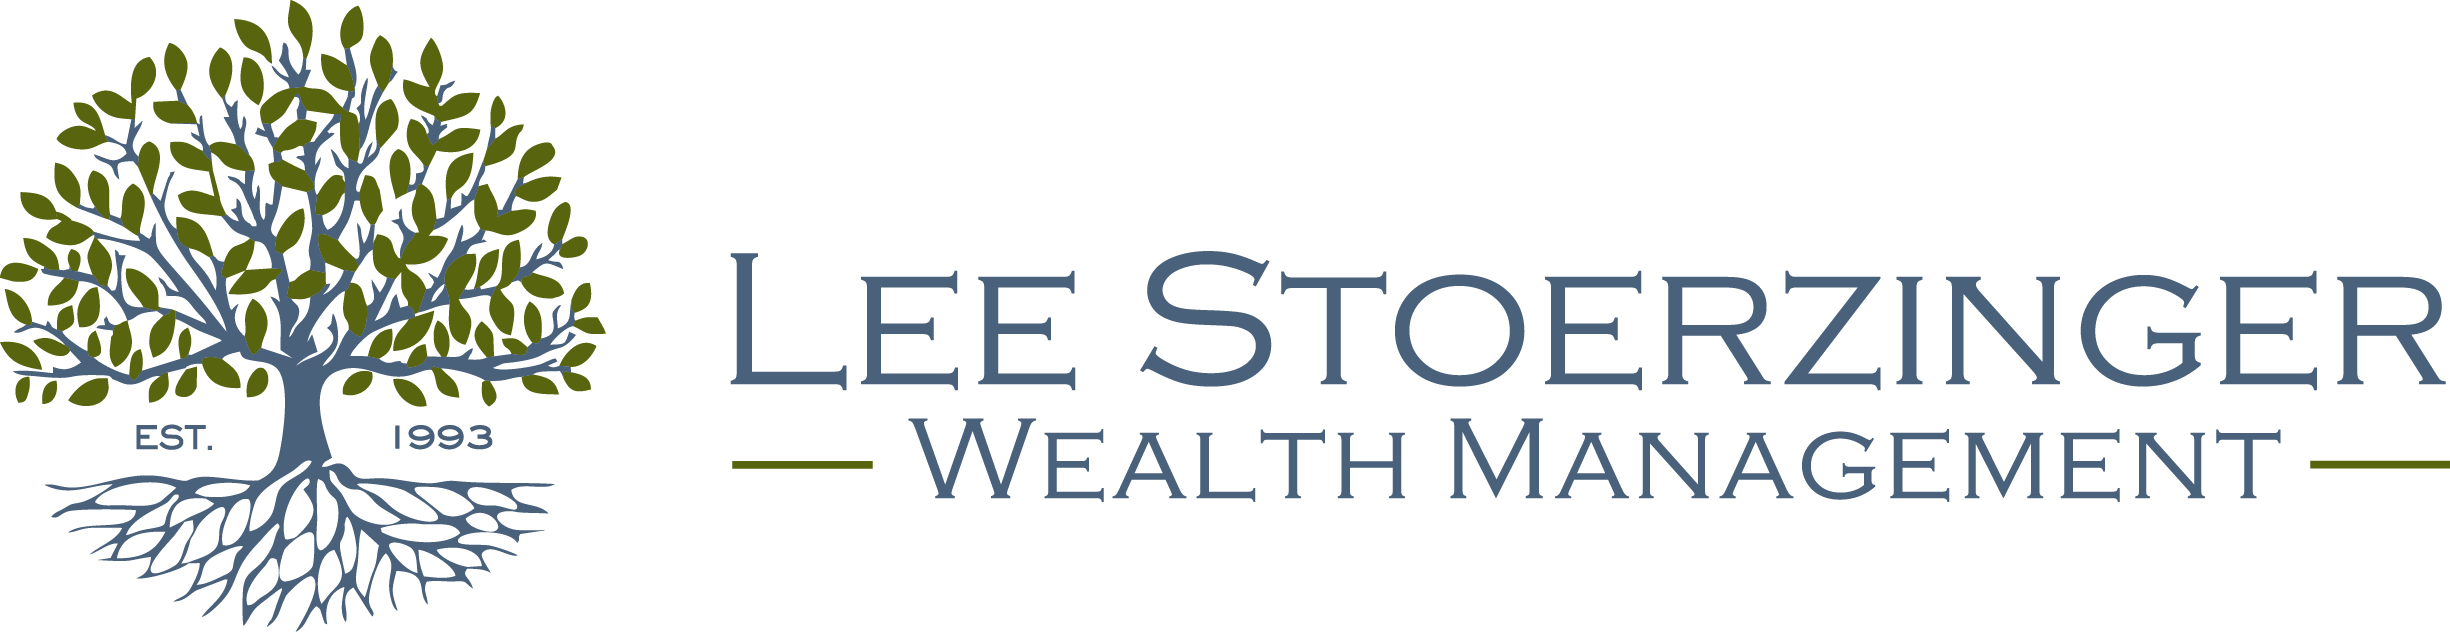 Logo for Lee Stoerzinger Wealth Management